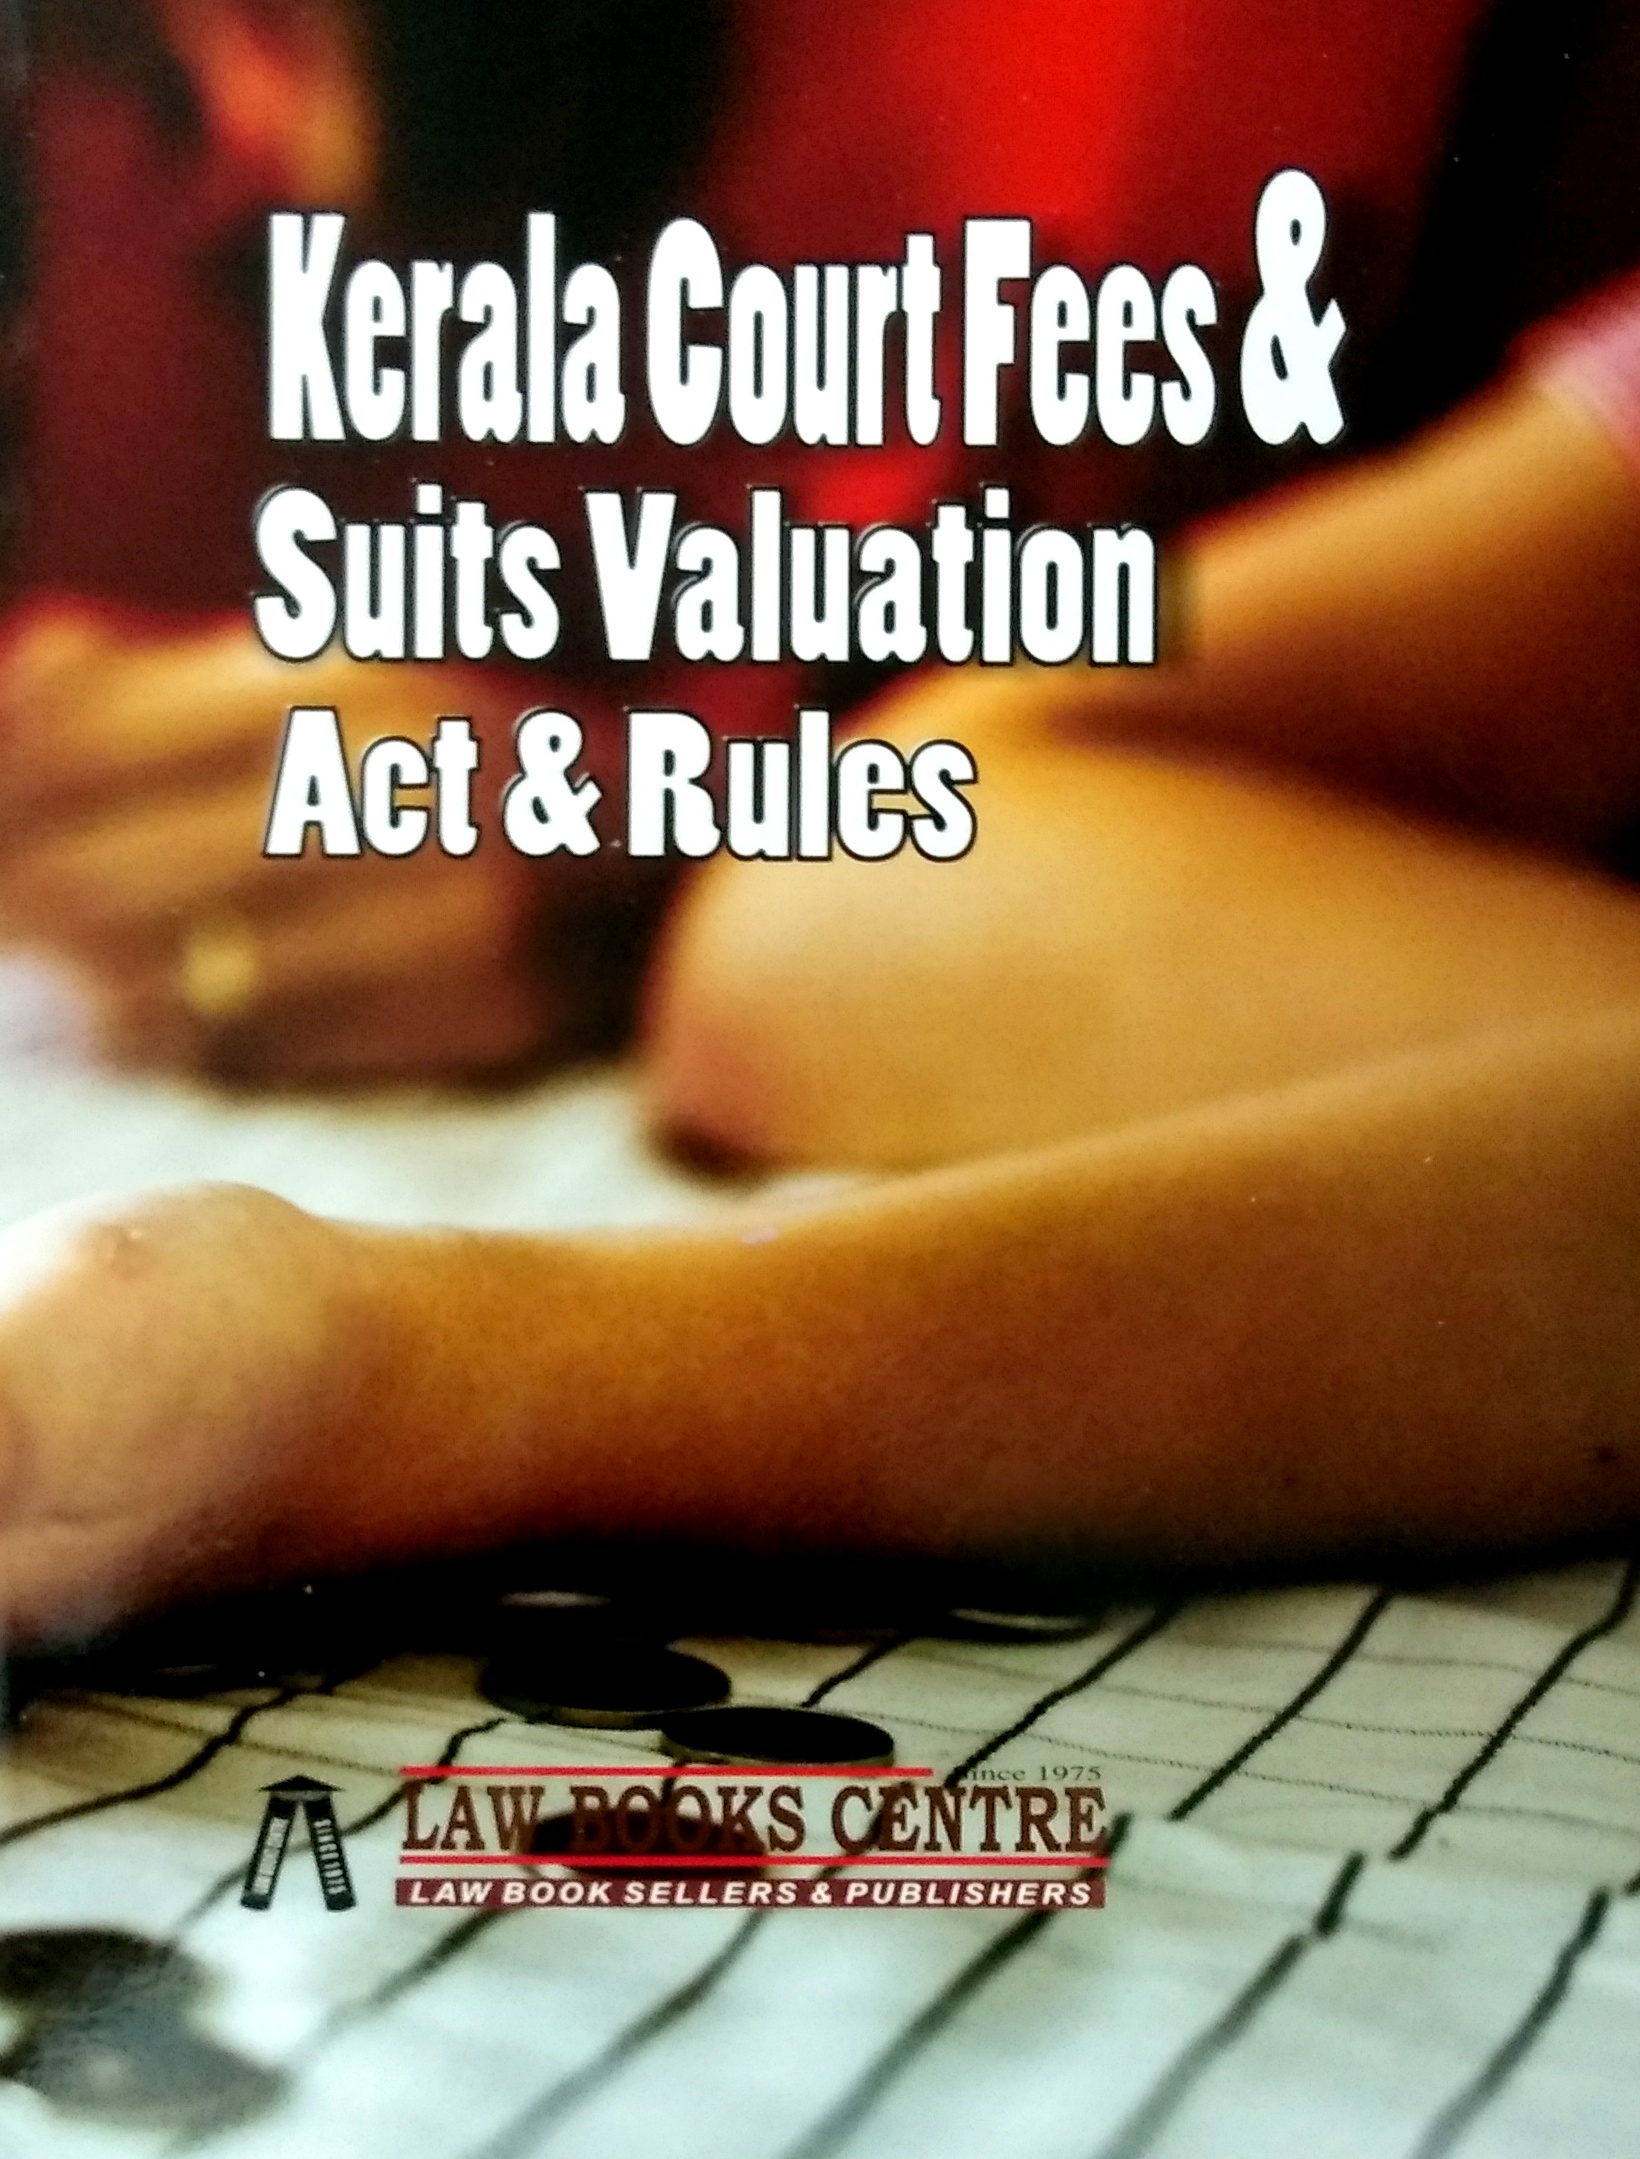 Kerala Court Fees & Suits Valuation Act & Rules (10th Edn. 2020)